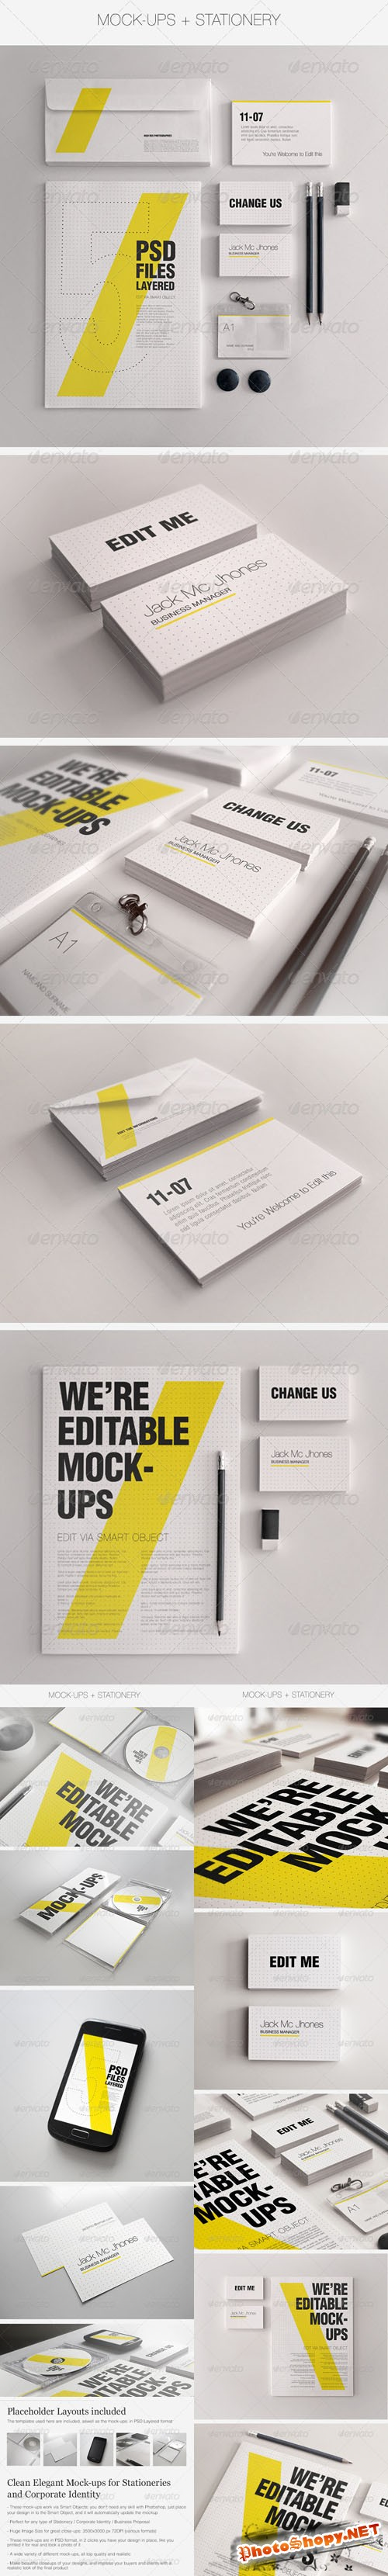 GraphicRiver - Realistic Stationery Mockups Bundle- Corporate ID